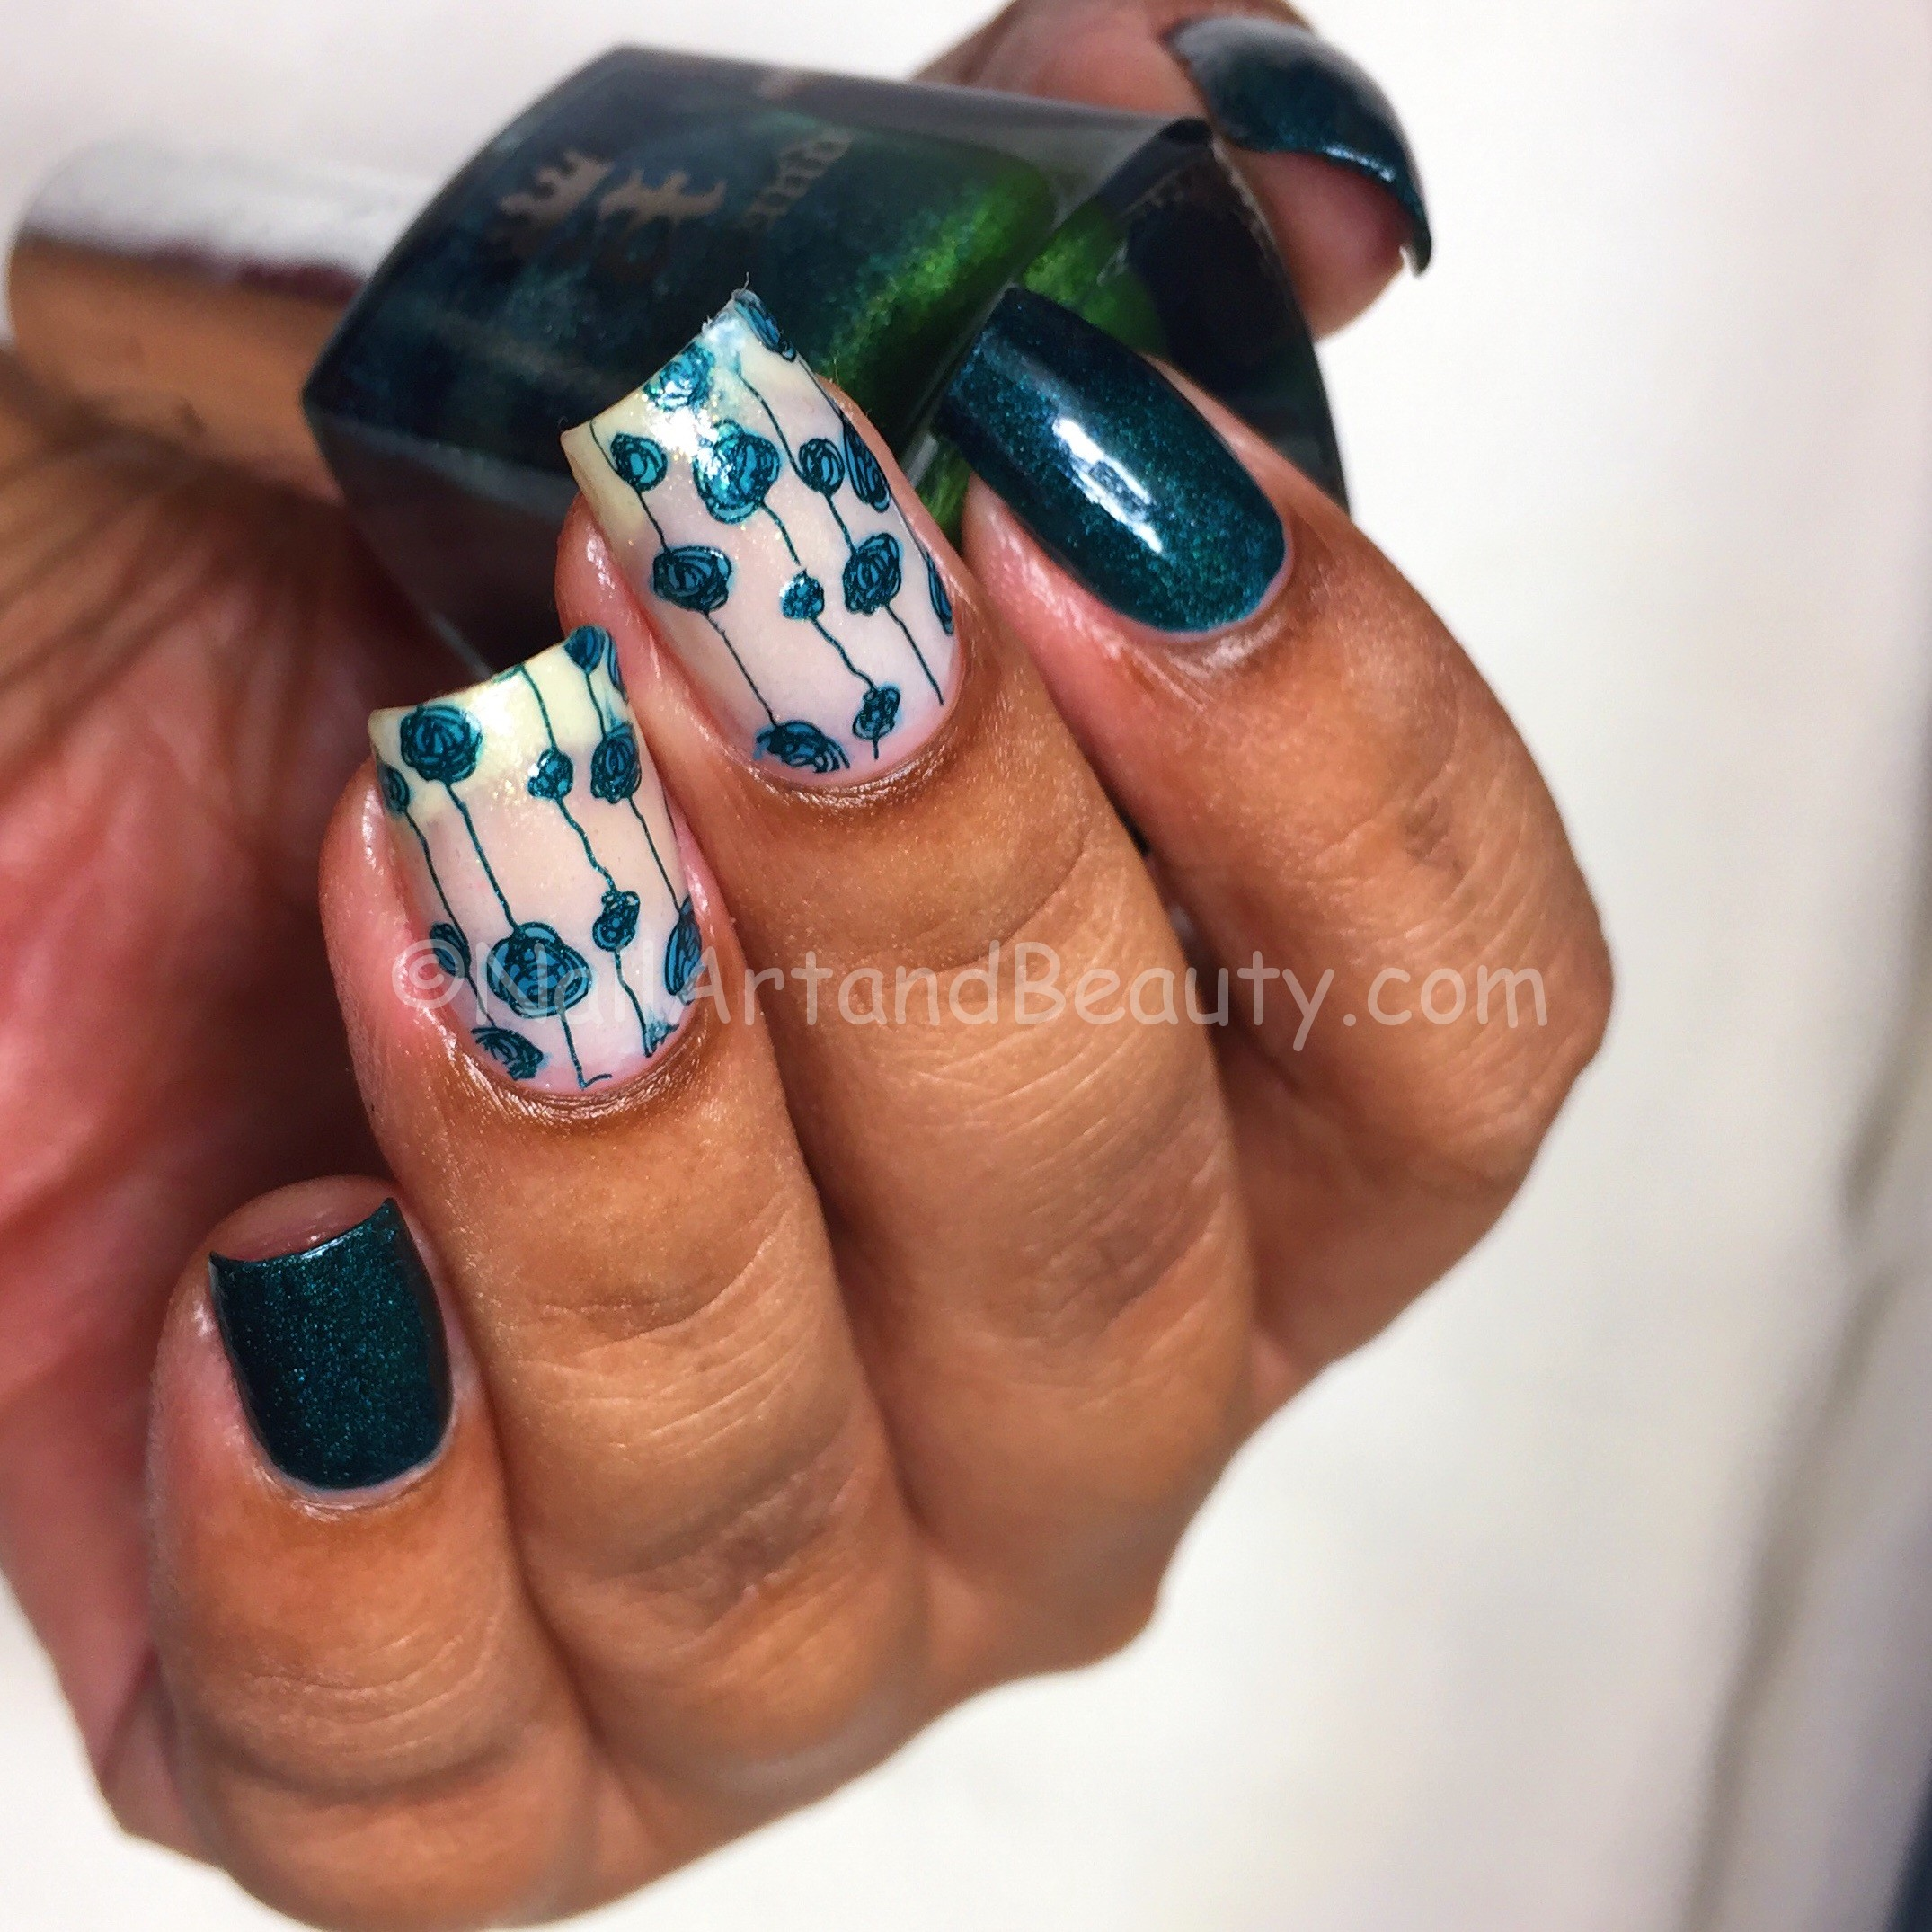 Teal Mani with A England Saint George